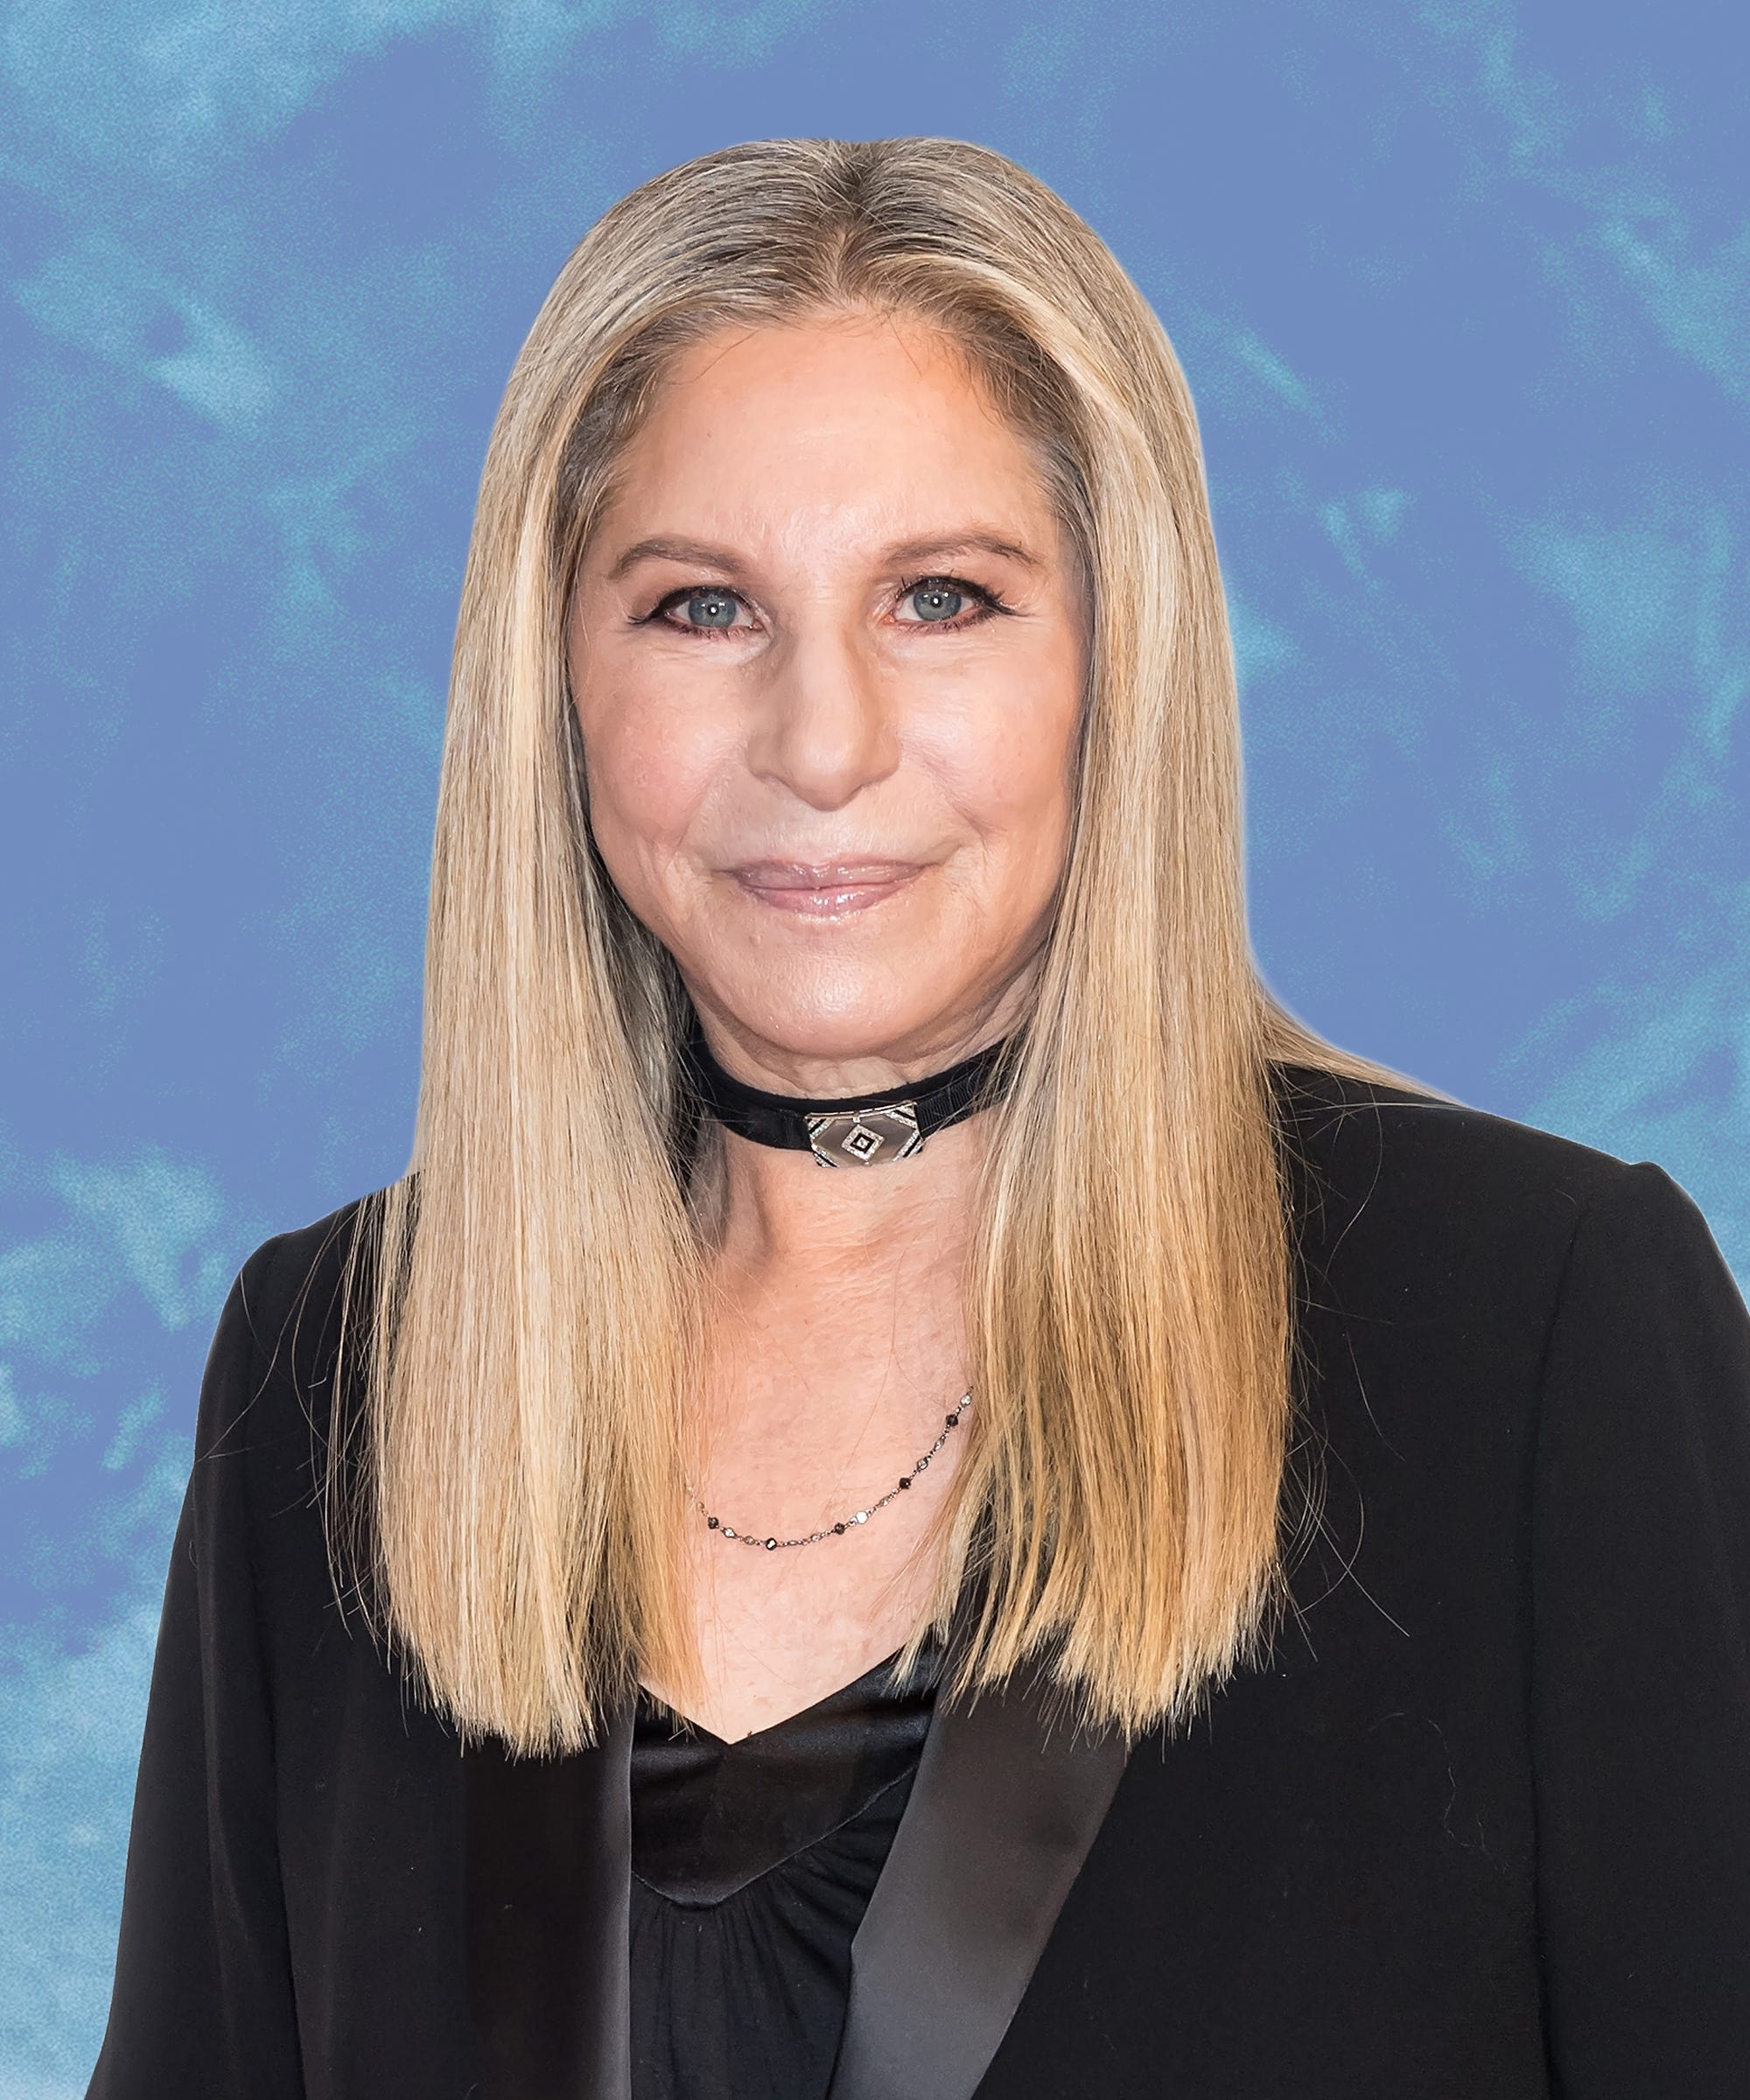 Barbra Streisand's Take On Michael Jackson's Accusers Has Left The Internet Asking: Why?